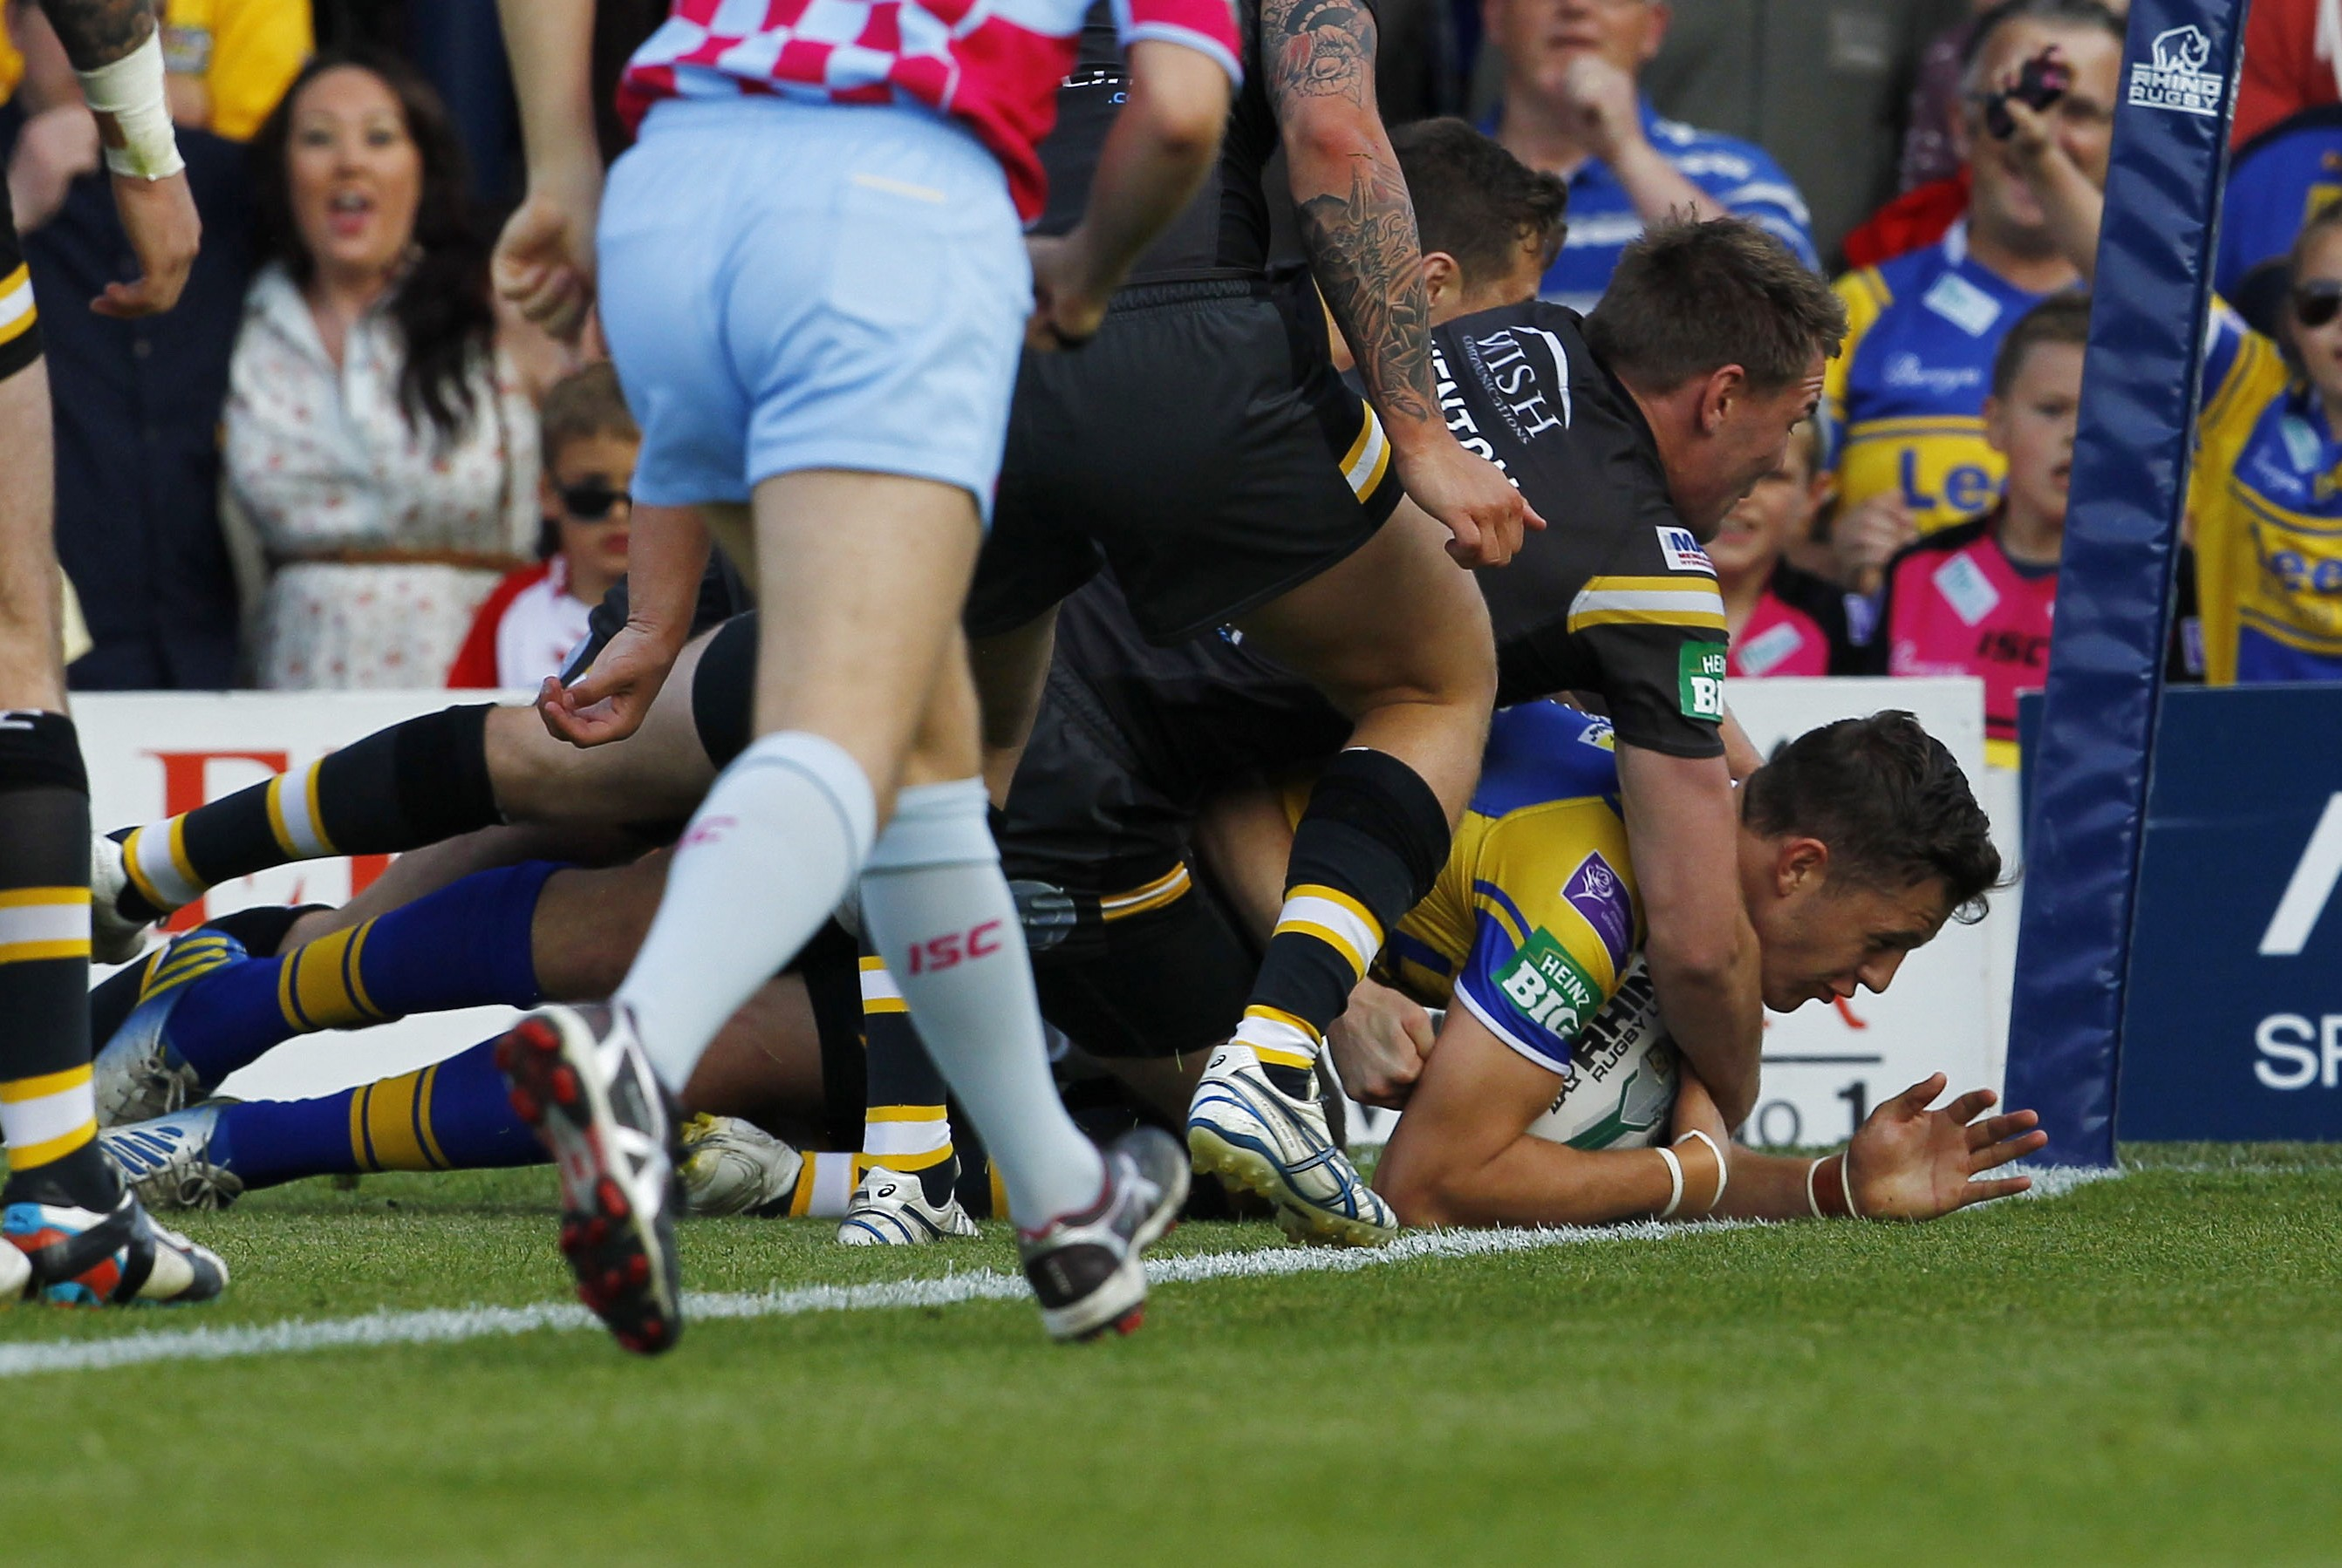 Leeds Rhinos star Thomas Minns shells out £340 on tickets to his own match